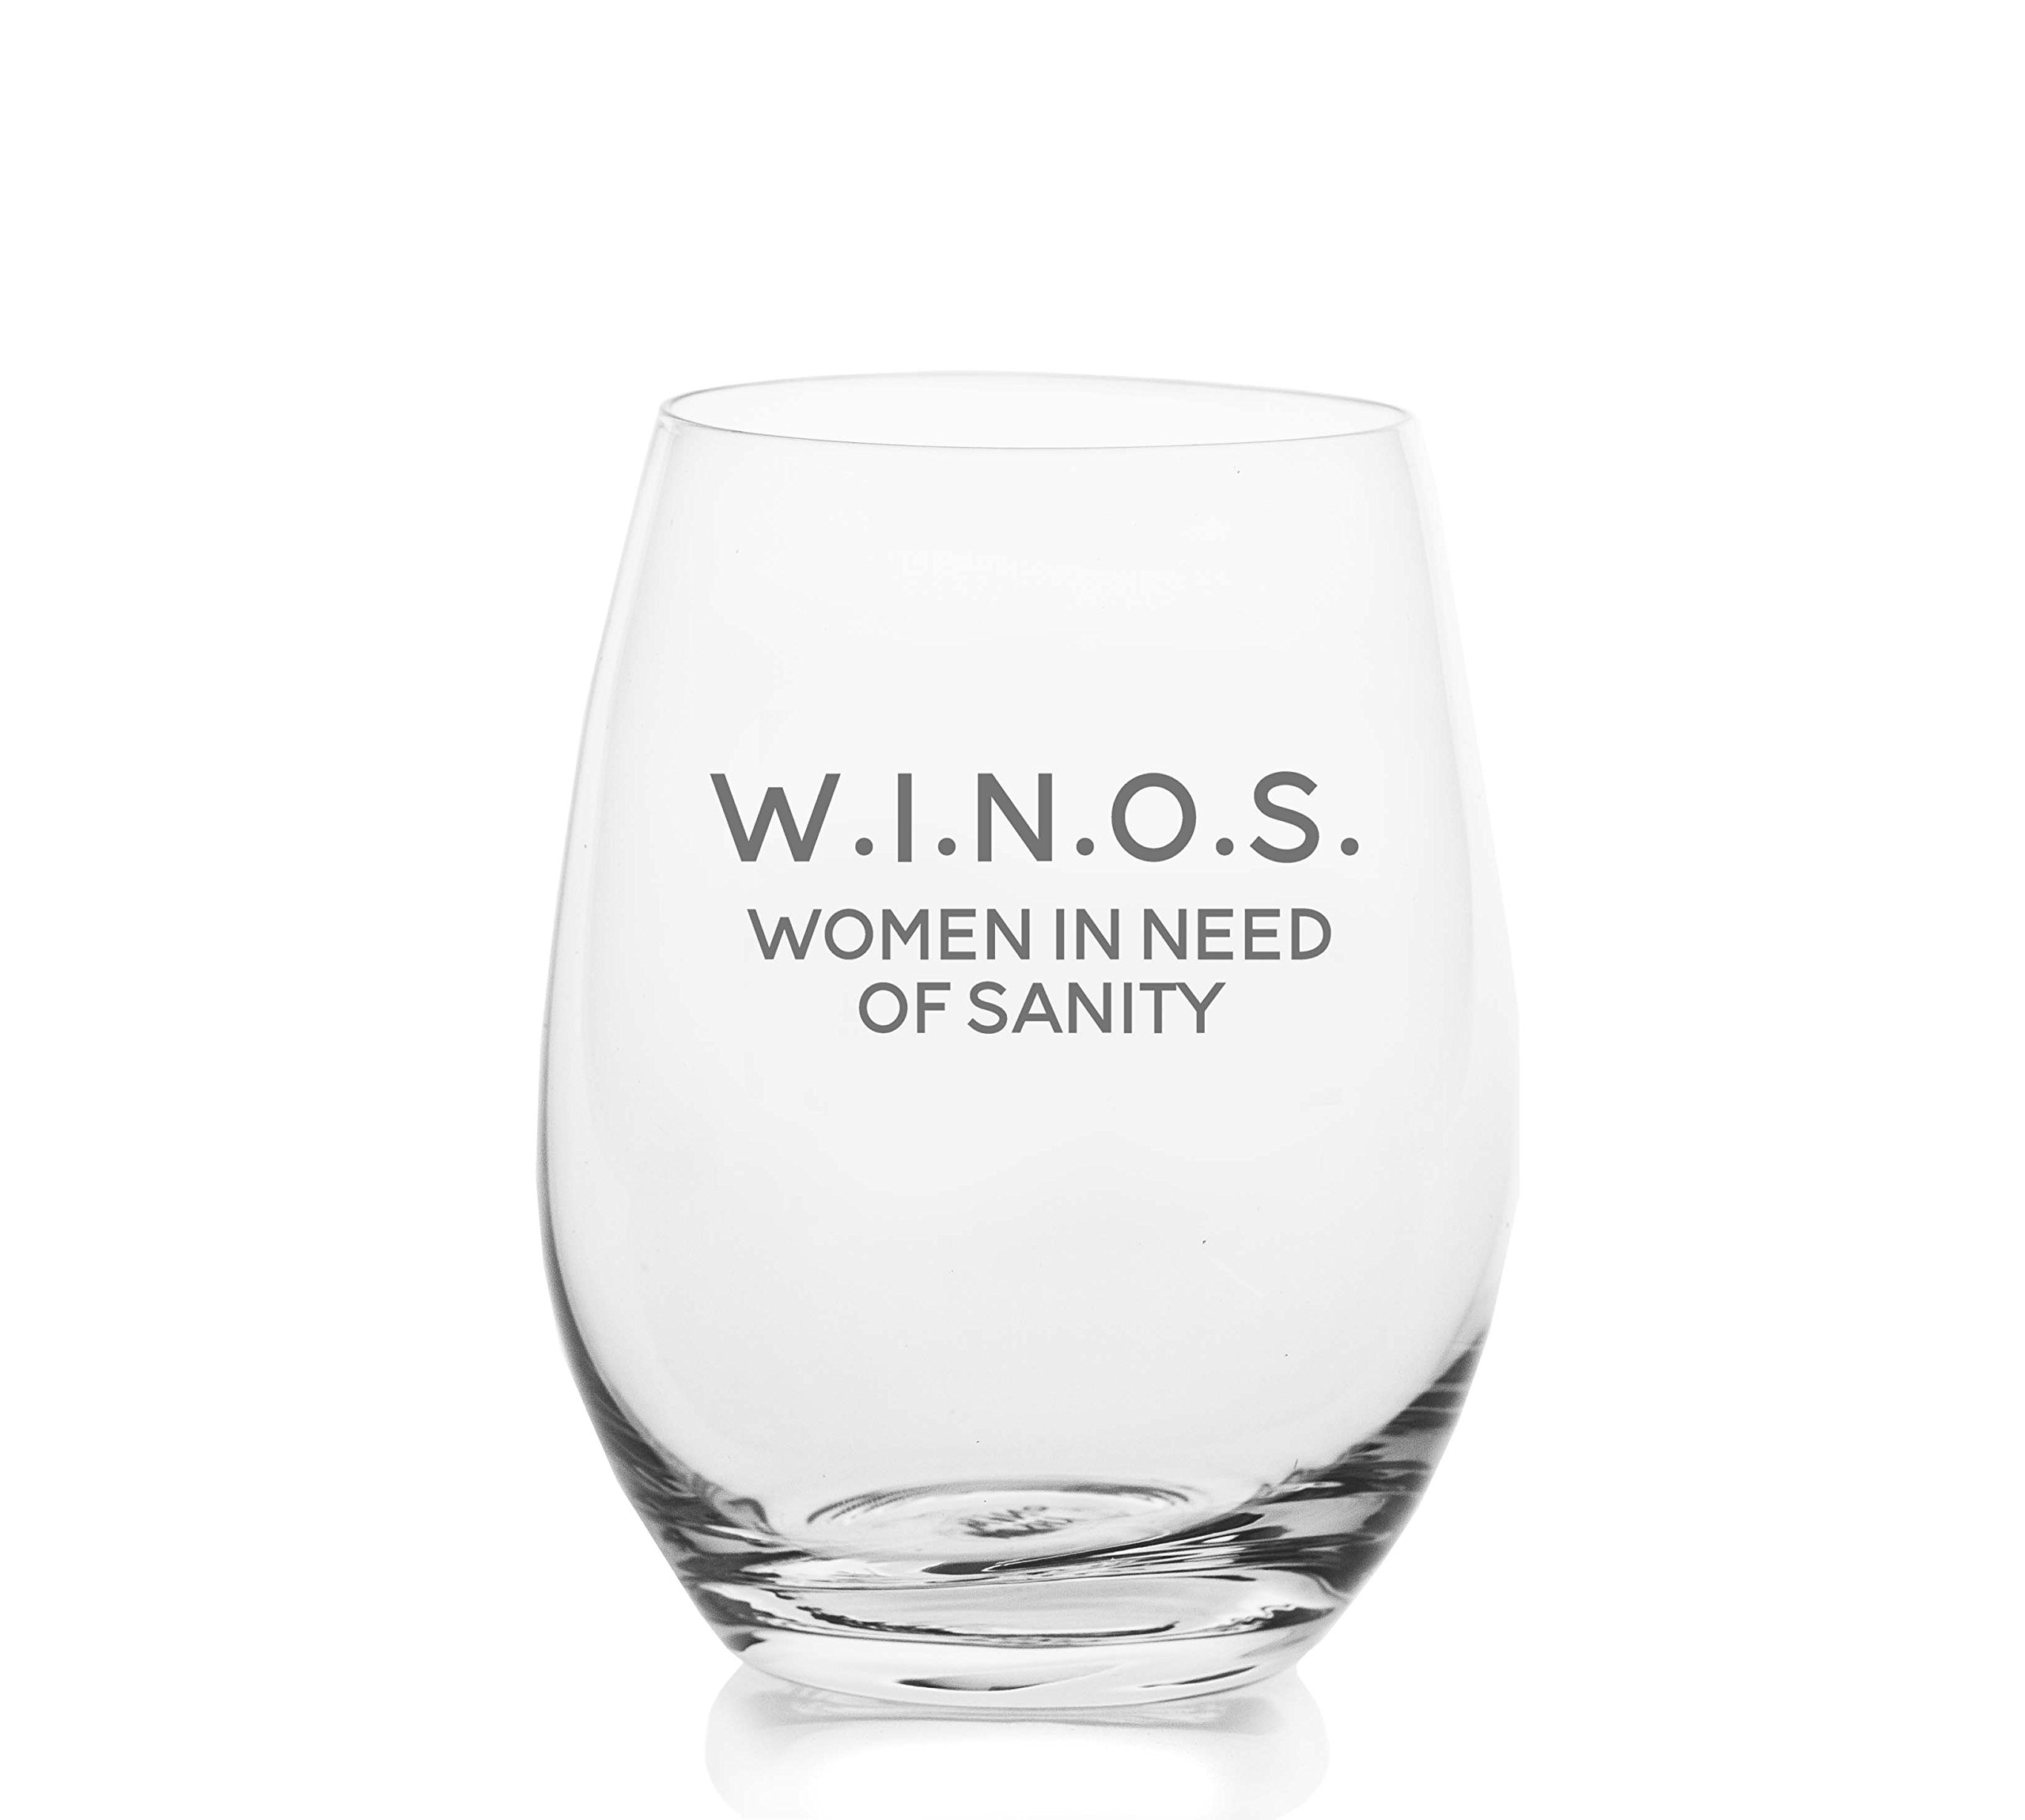 W.I.N.O.S. Women In Need Of Sanity – Cute Funny Stemless Wine Glass, Large 16 Ounce Size, Etched Sayings, Gift Box